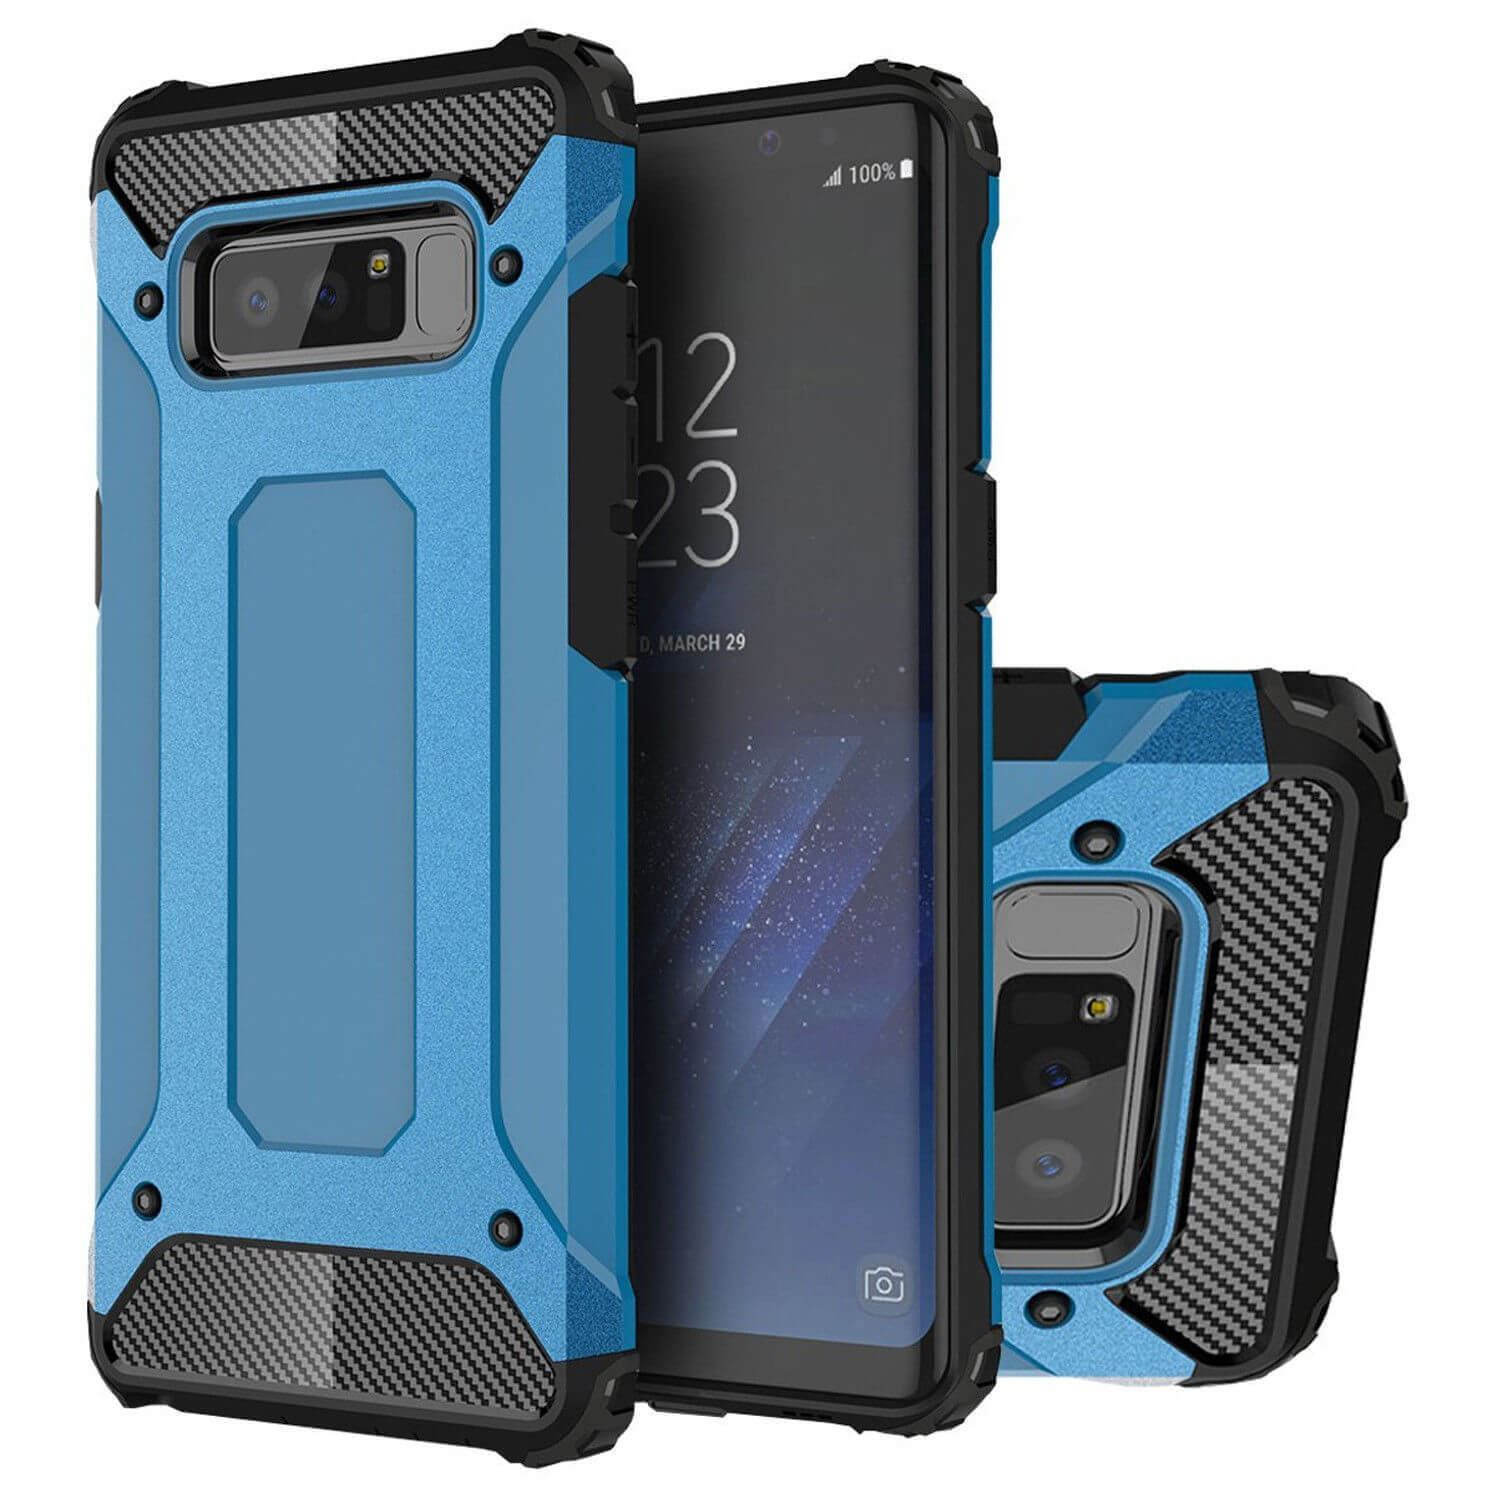 Hybrid-Armor-Shockproof-Rugged-Bumper-Case-For-Samsung-Galaxy-S7-Edge-S8-Note-S9 縮圖 68